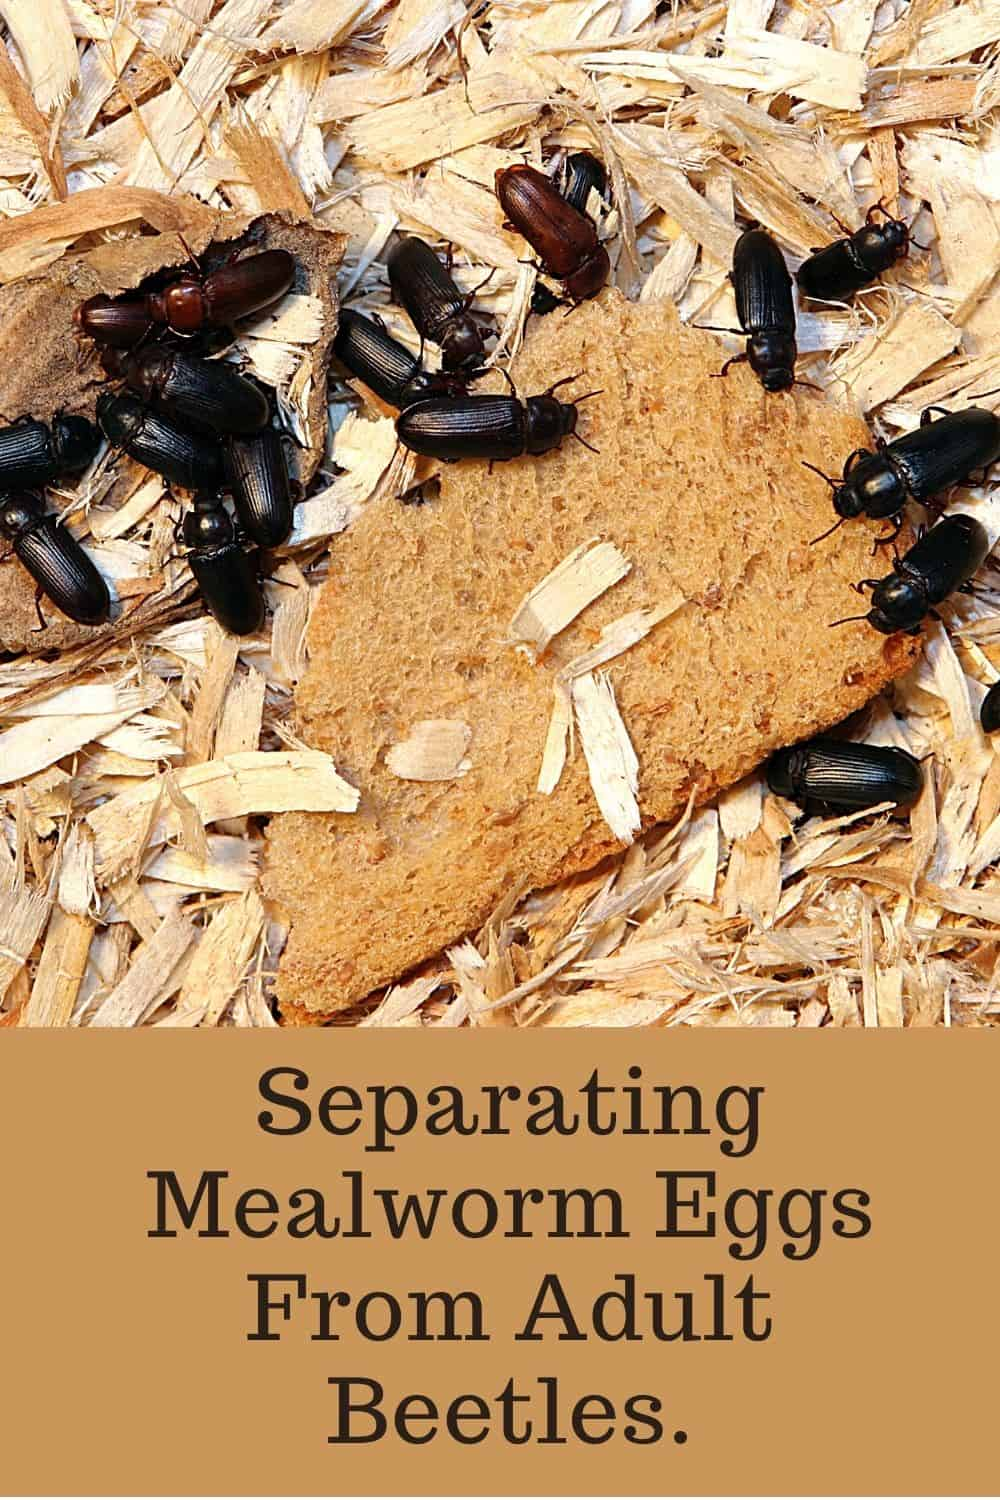 Separating Mealworm Eggs From Adult beetles